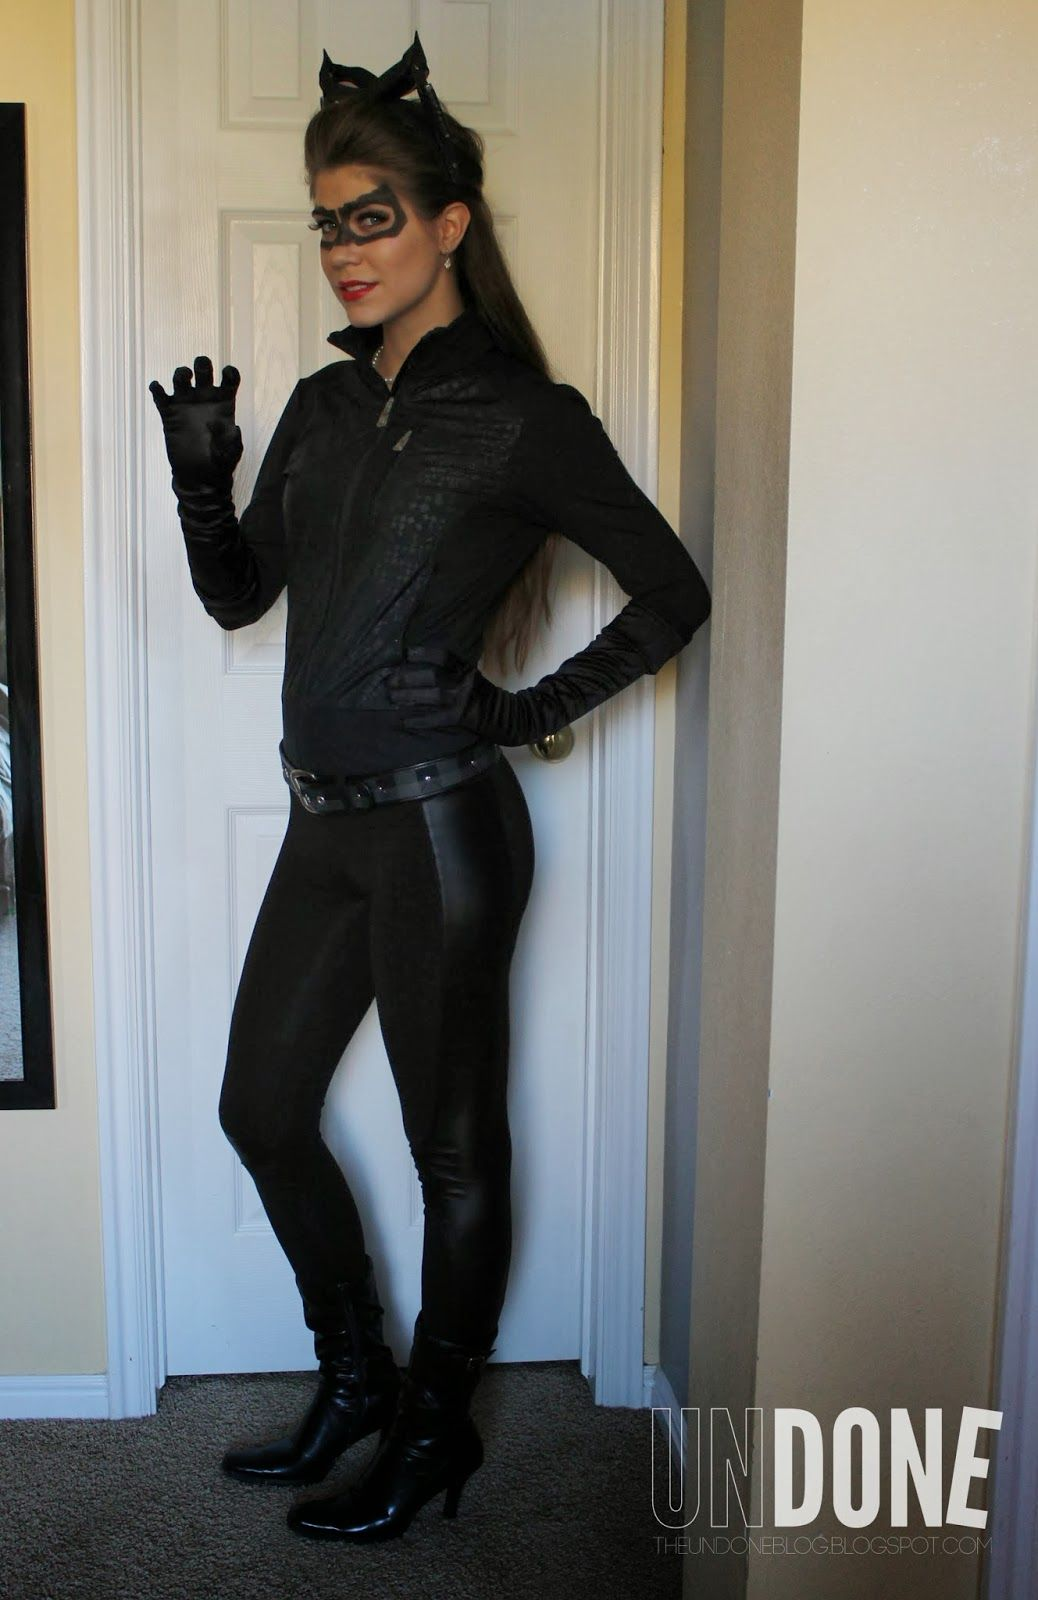 Undone DIY Catwoman Costume Daily Diaries  sc 1 st  Pinterest & Undone: DIY Catwoman Costume Daily Diaries | dips | Pinterest ...